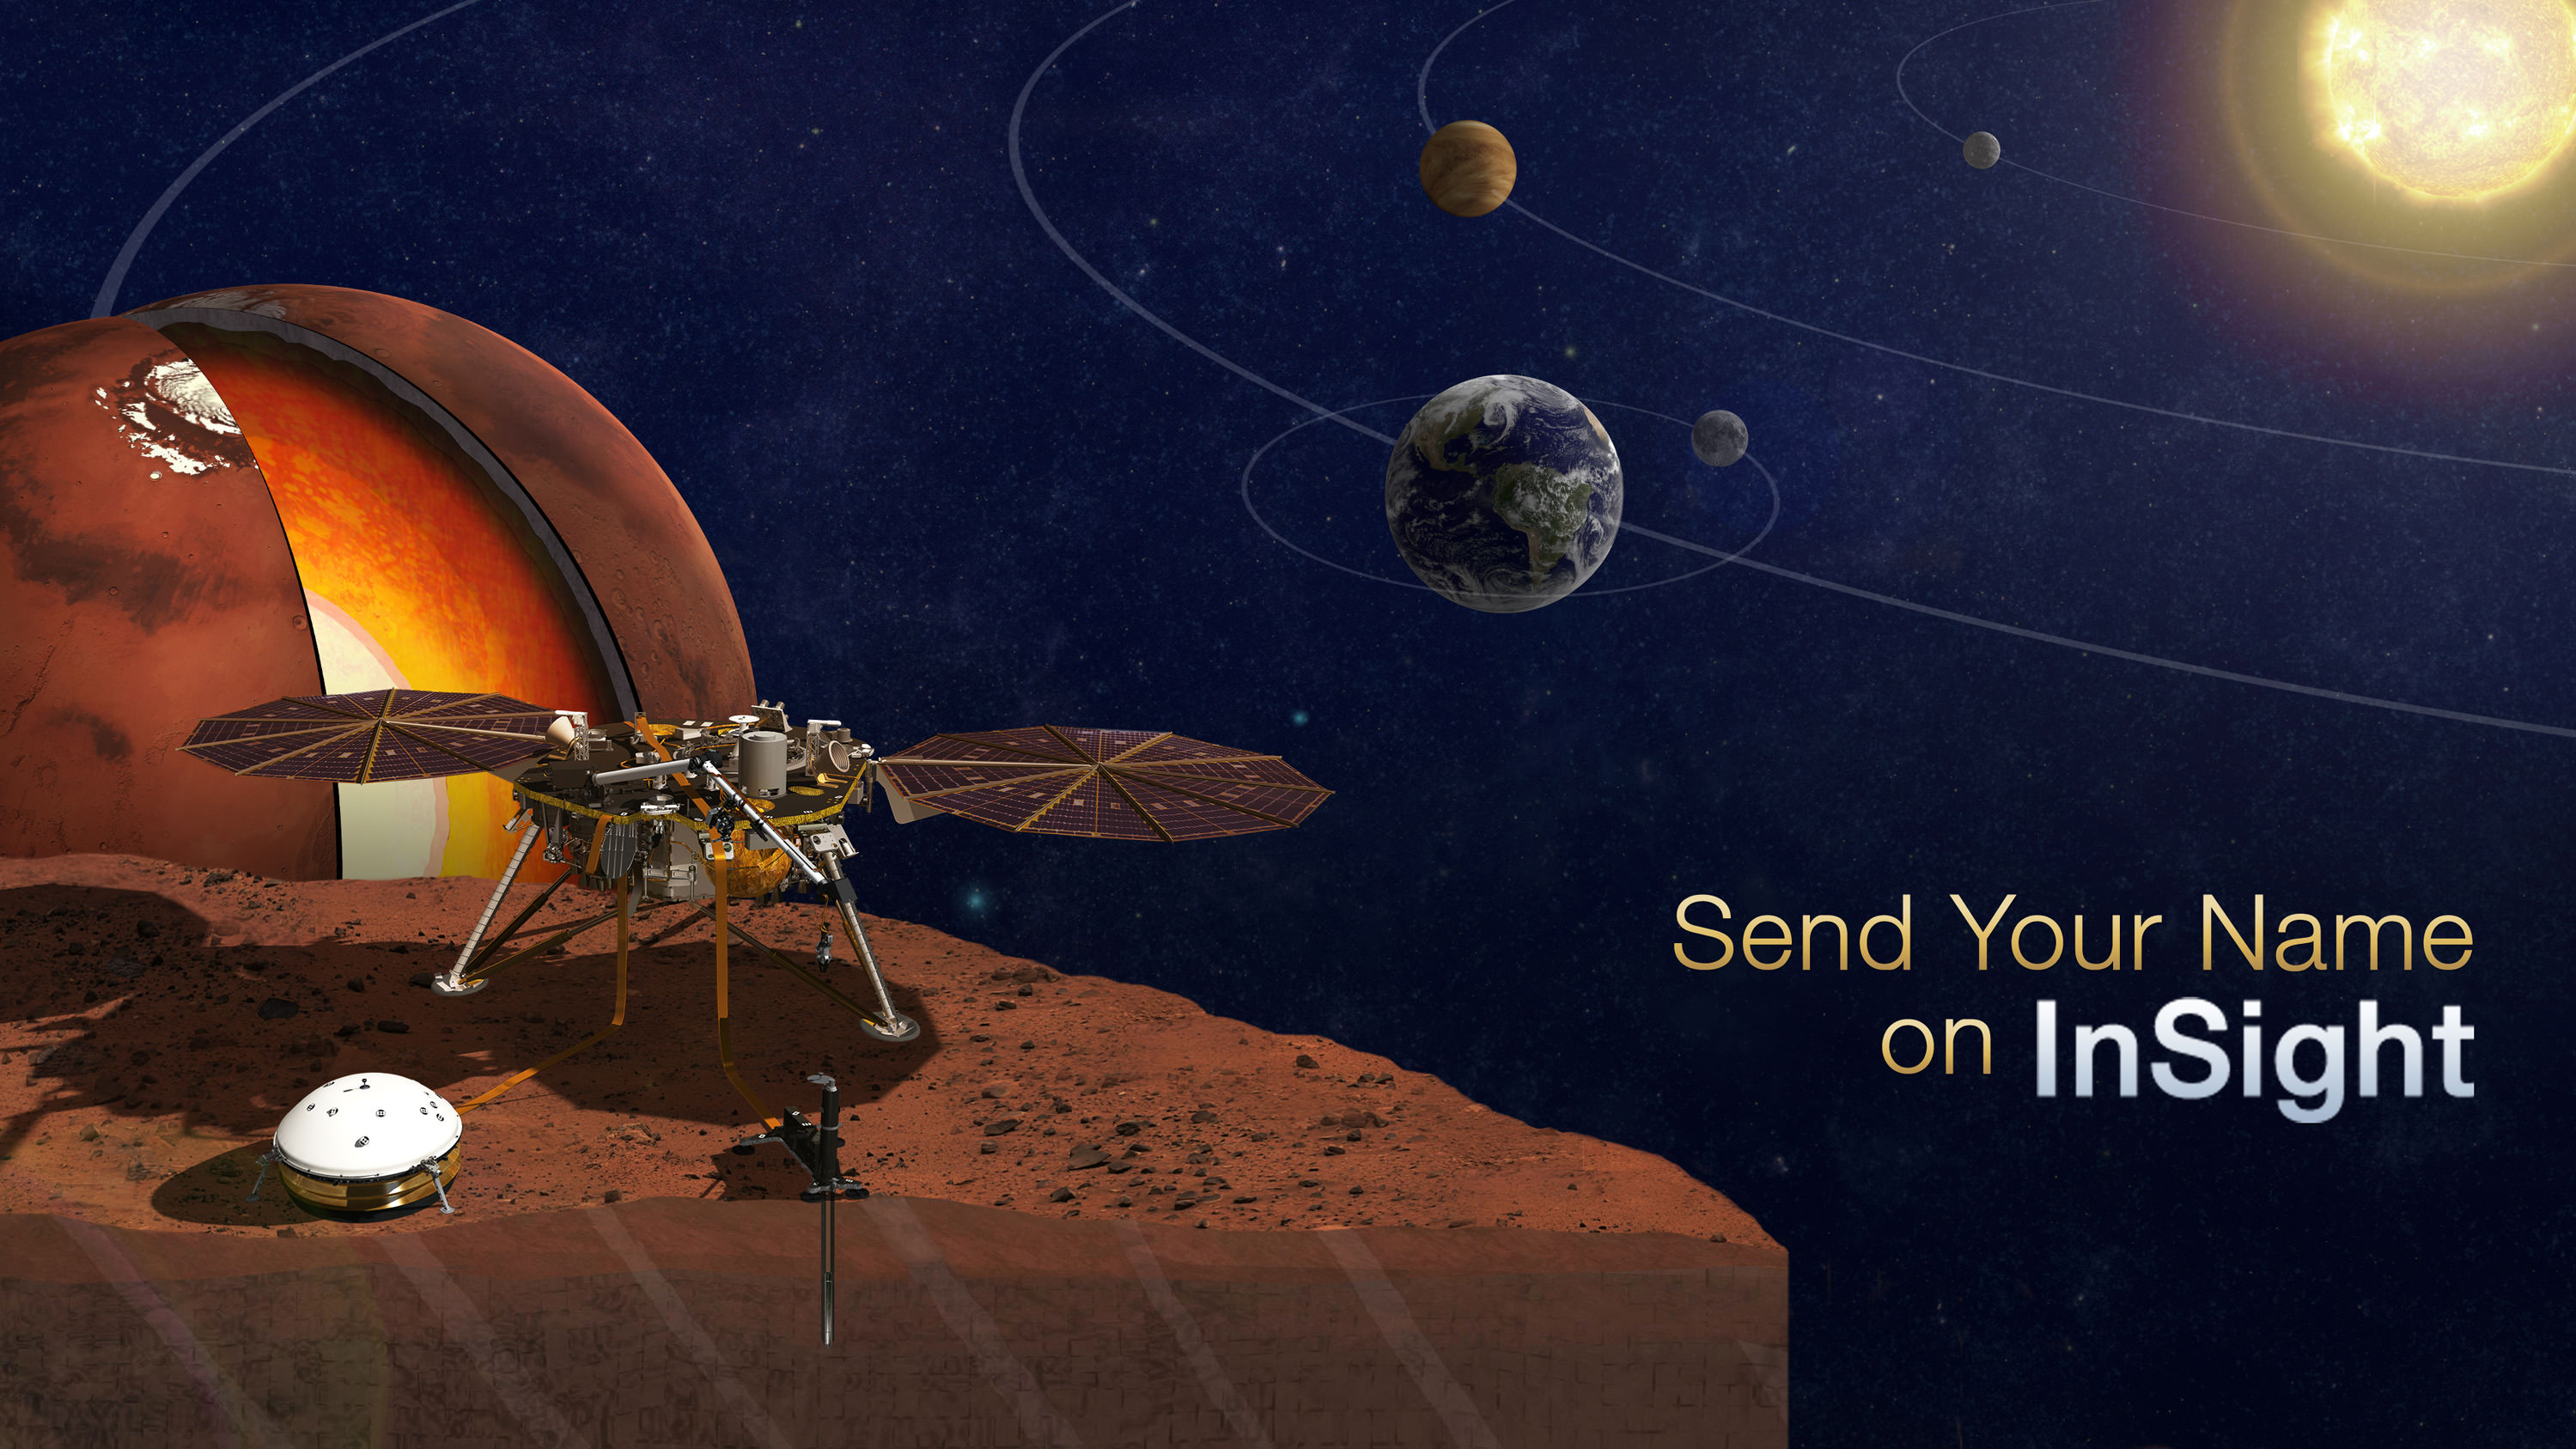 NASA Invites Public to 'Send Your Name to Mars' on InSight ...